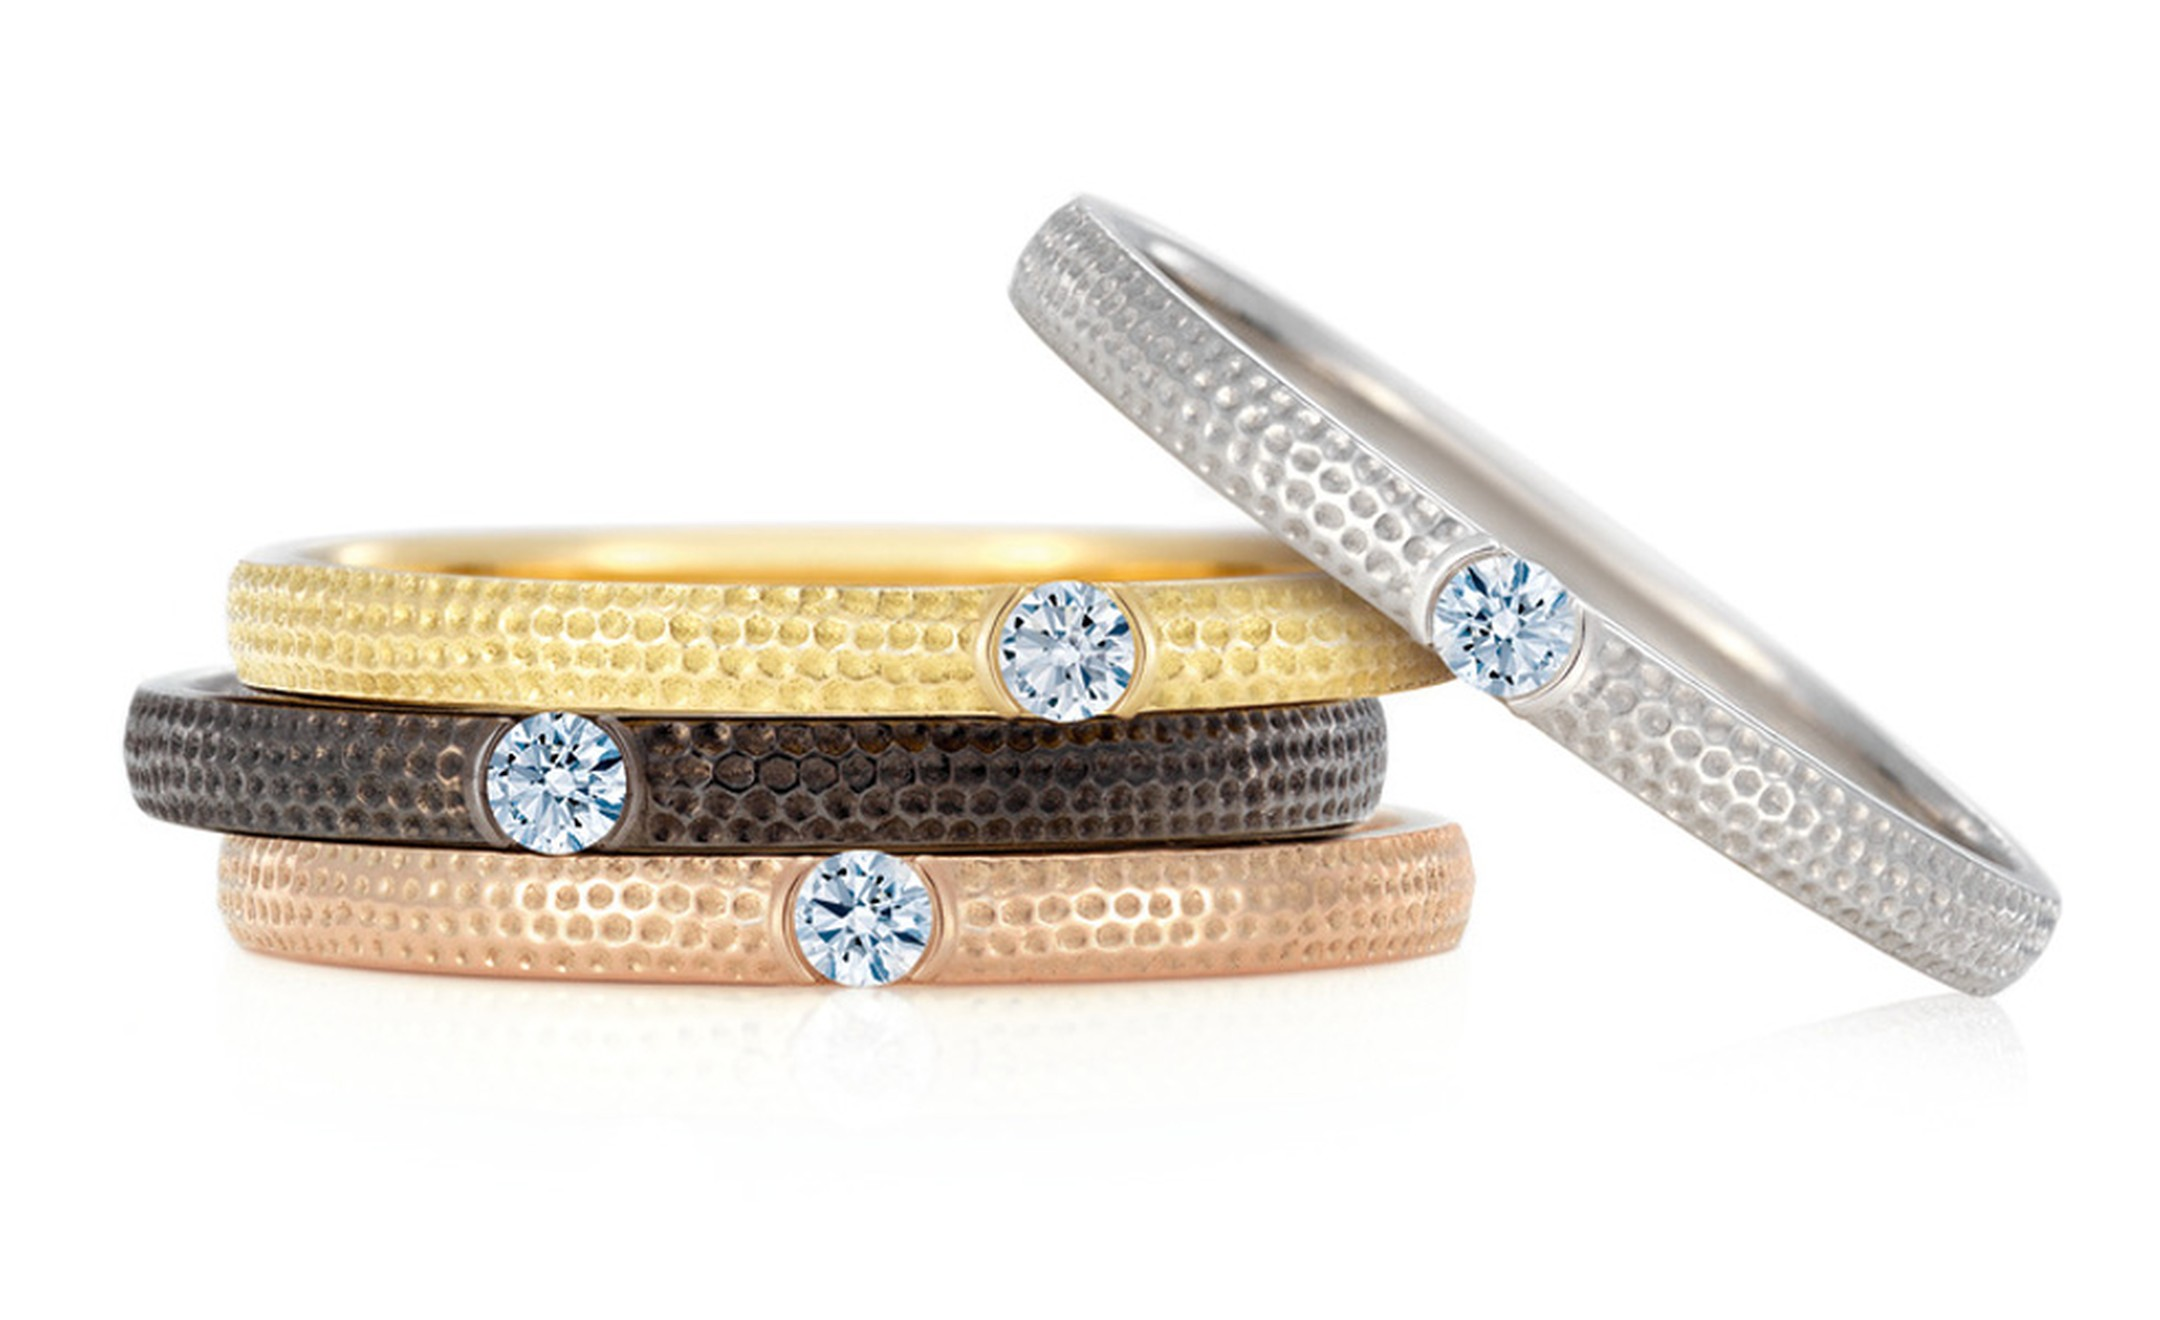 DE BEERS. Azulea Bands selection. Price from £600.